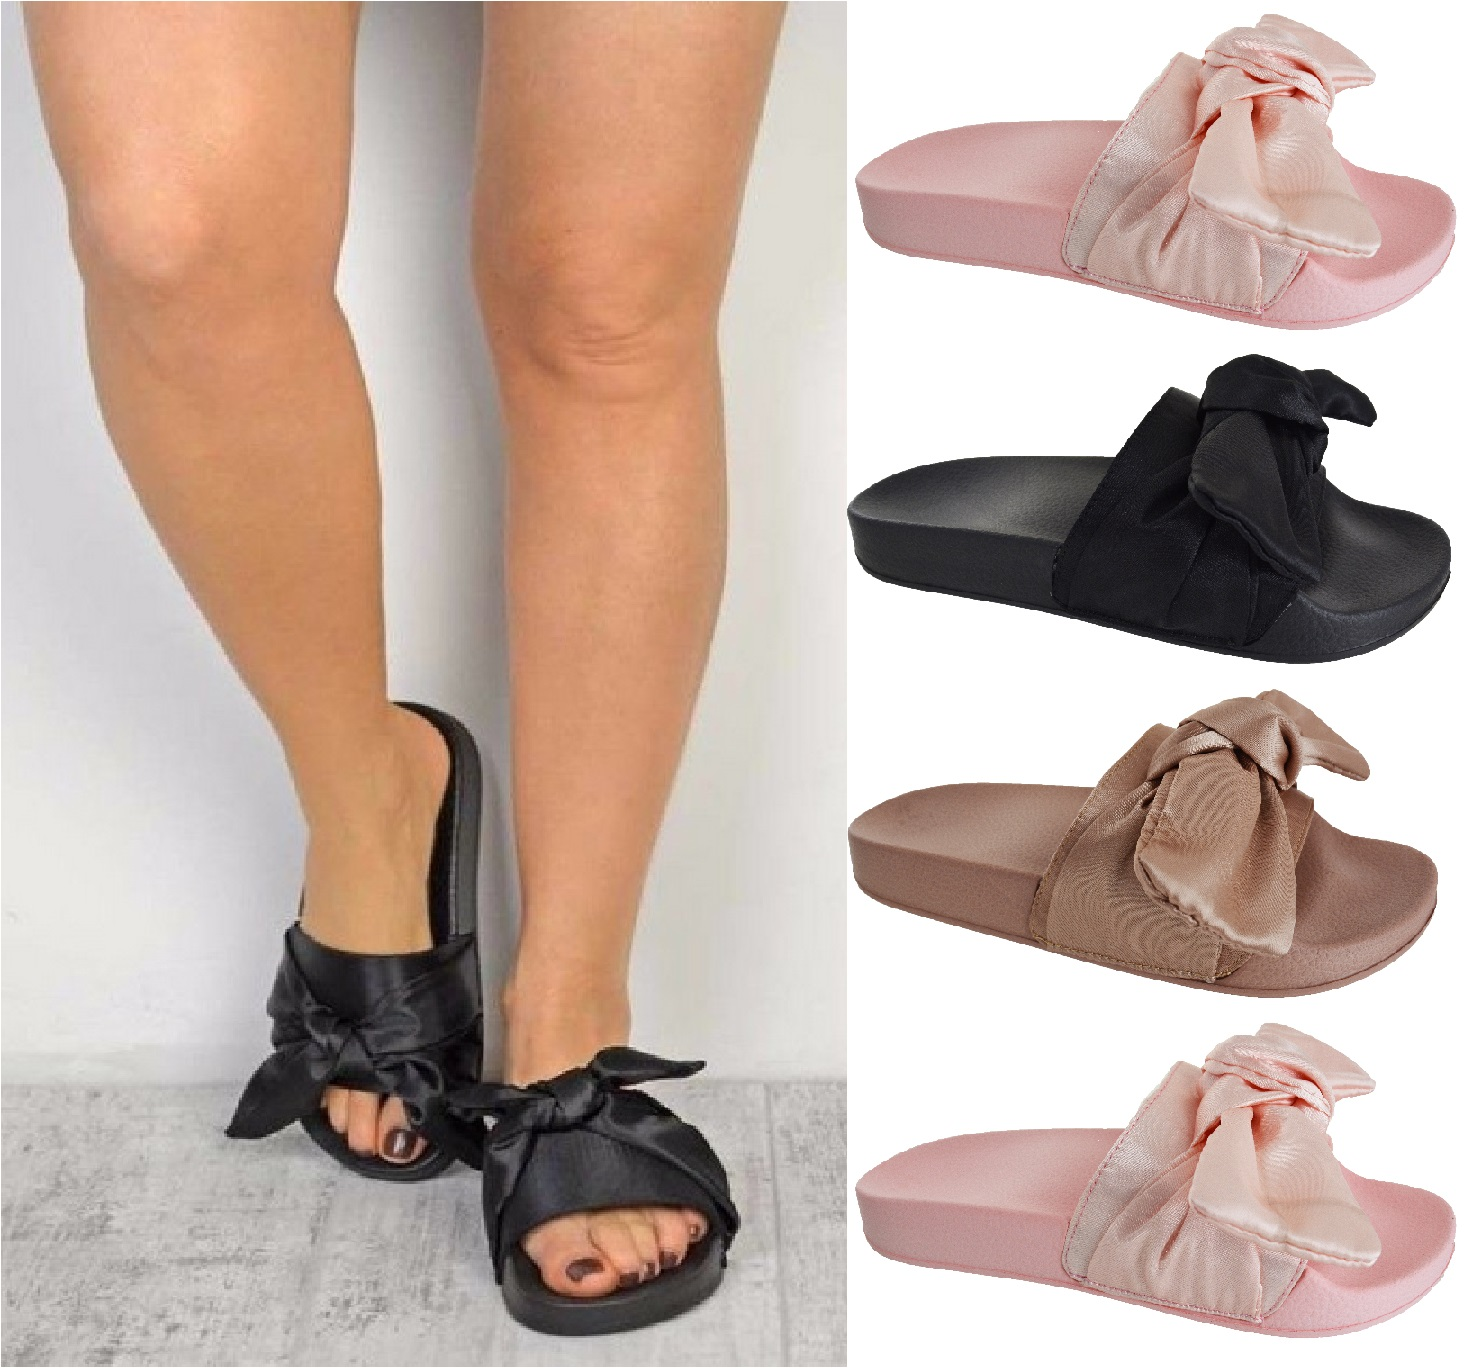 damen flache slipper satin schleife schieber gummi sandalen pantoffeln schuhe ebay. Black Bedroom Furniture Sets. Home Design Ideas